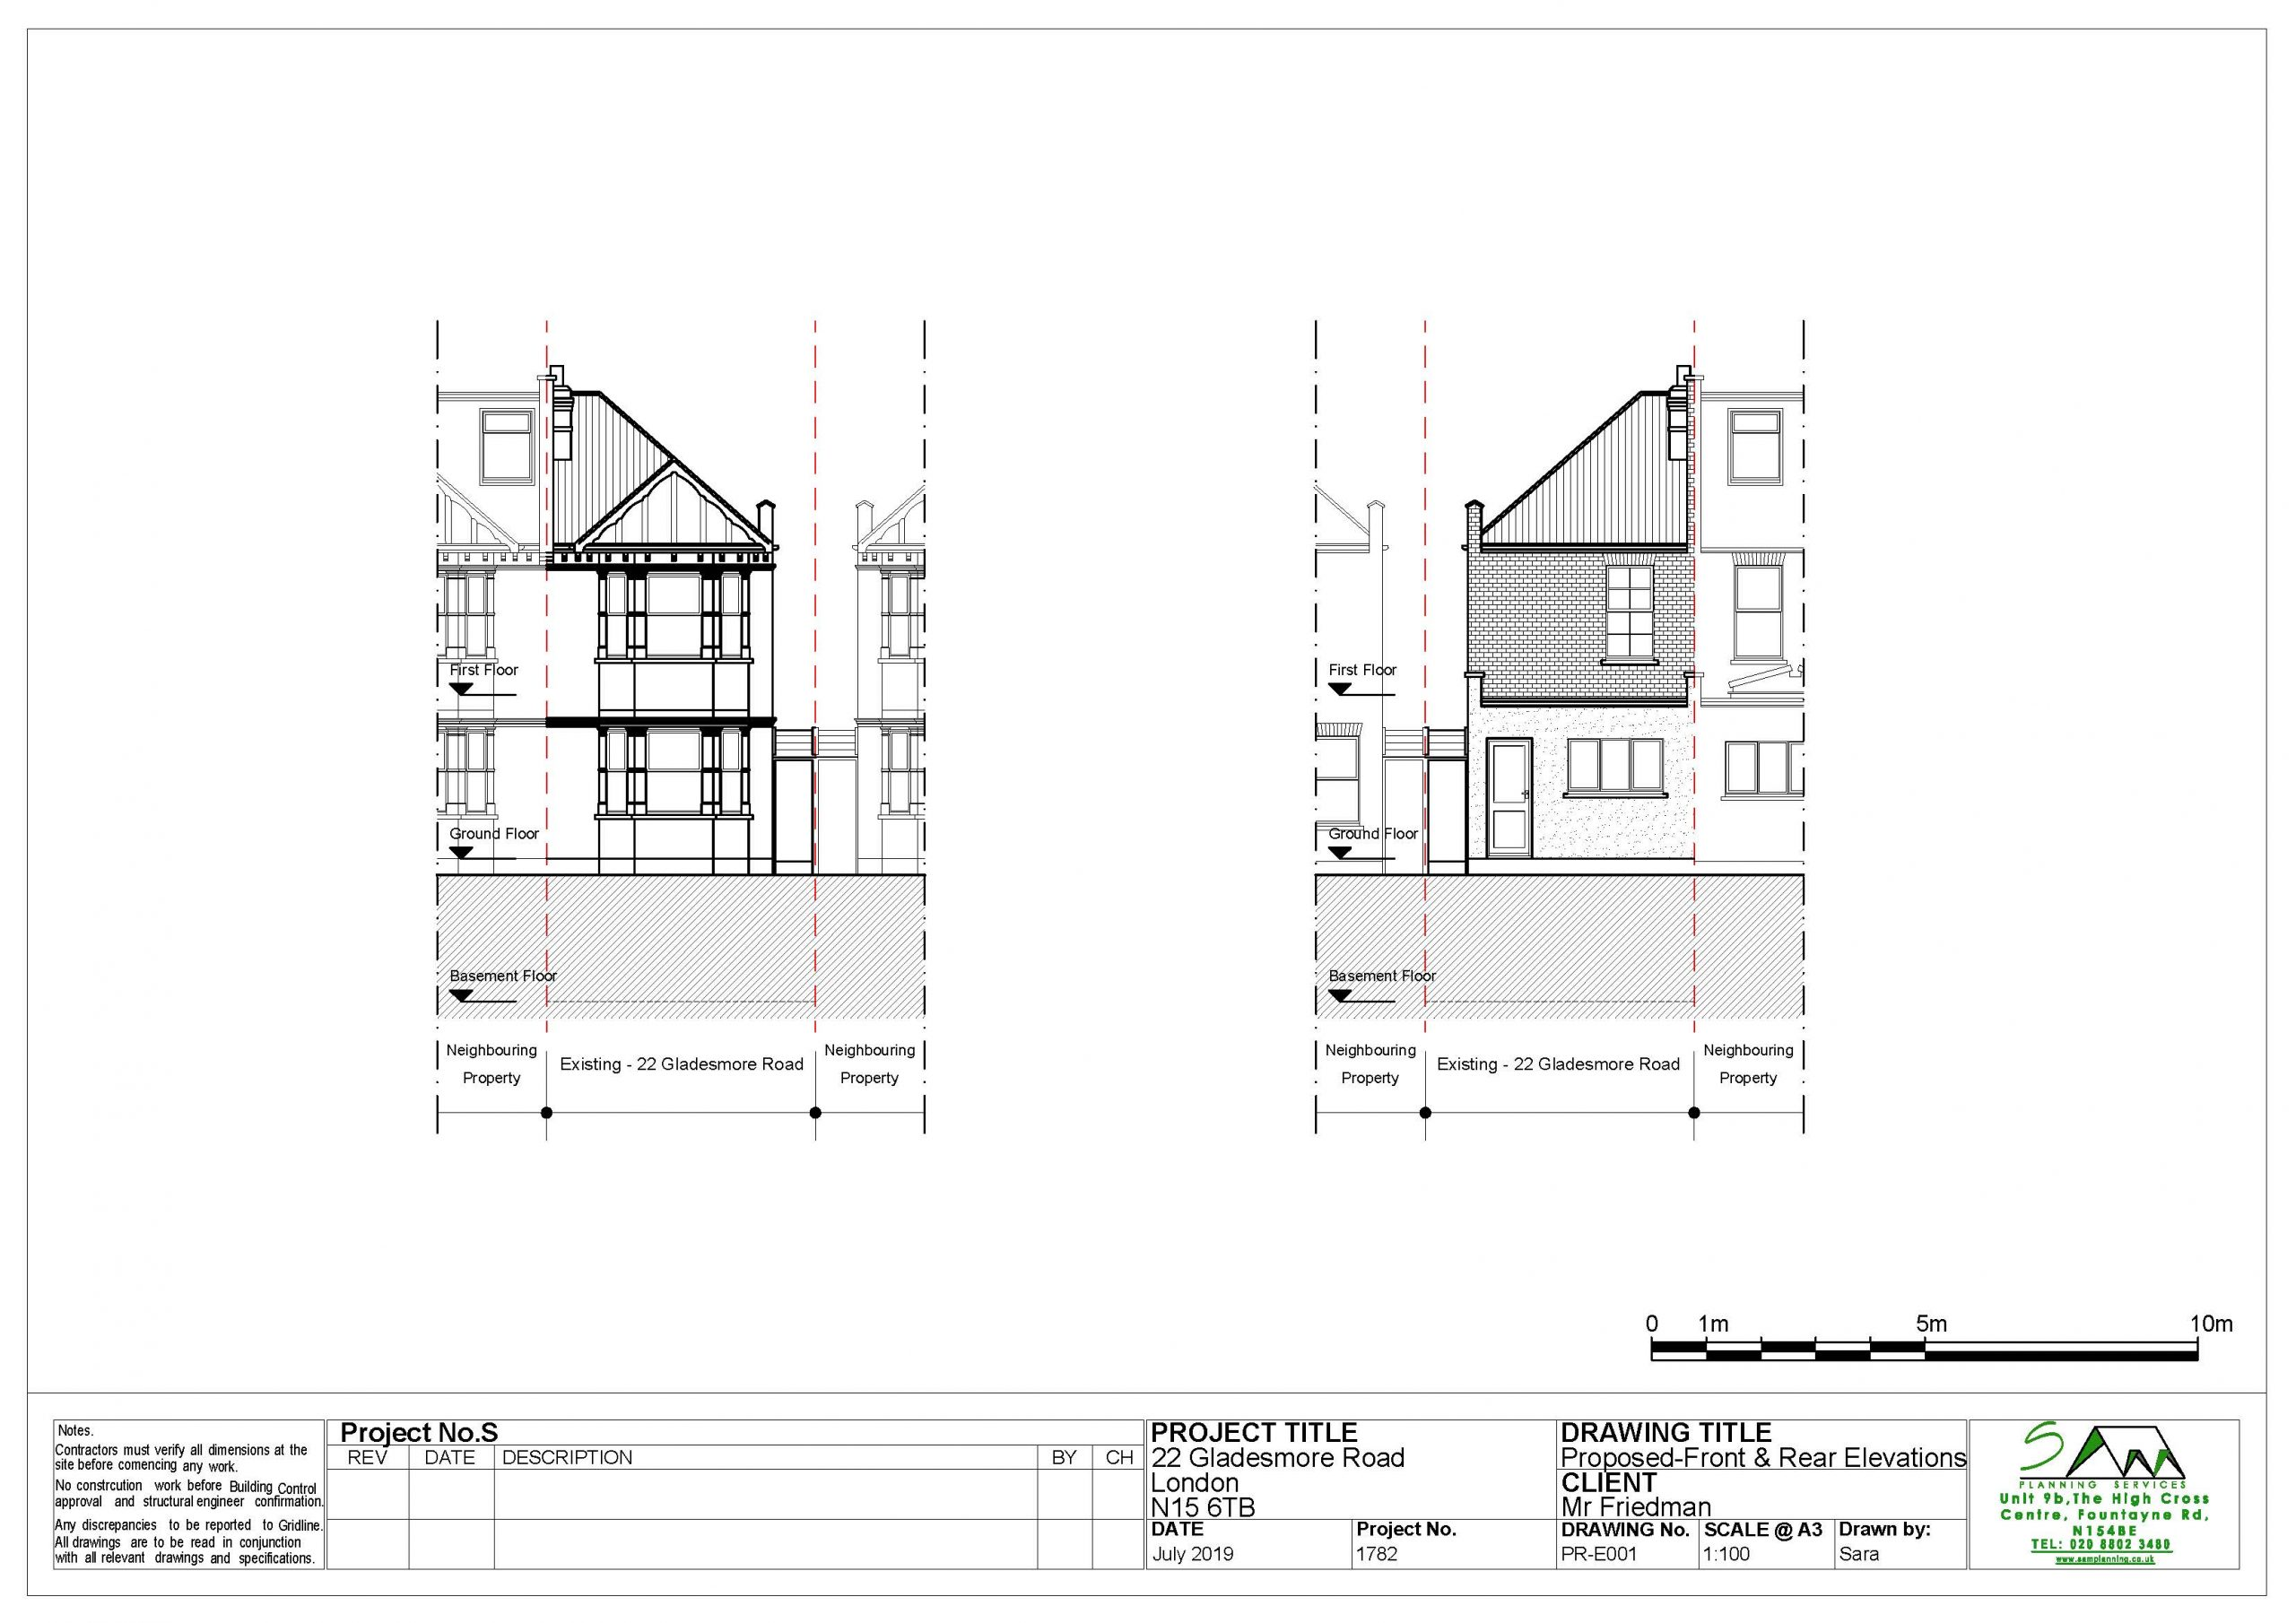 22gladesmoreProposed Front and Rear Elevations